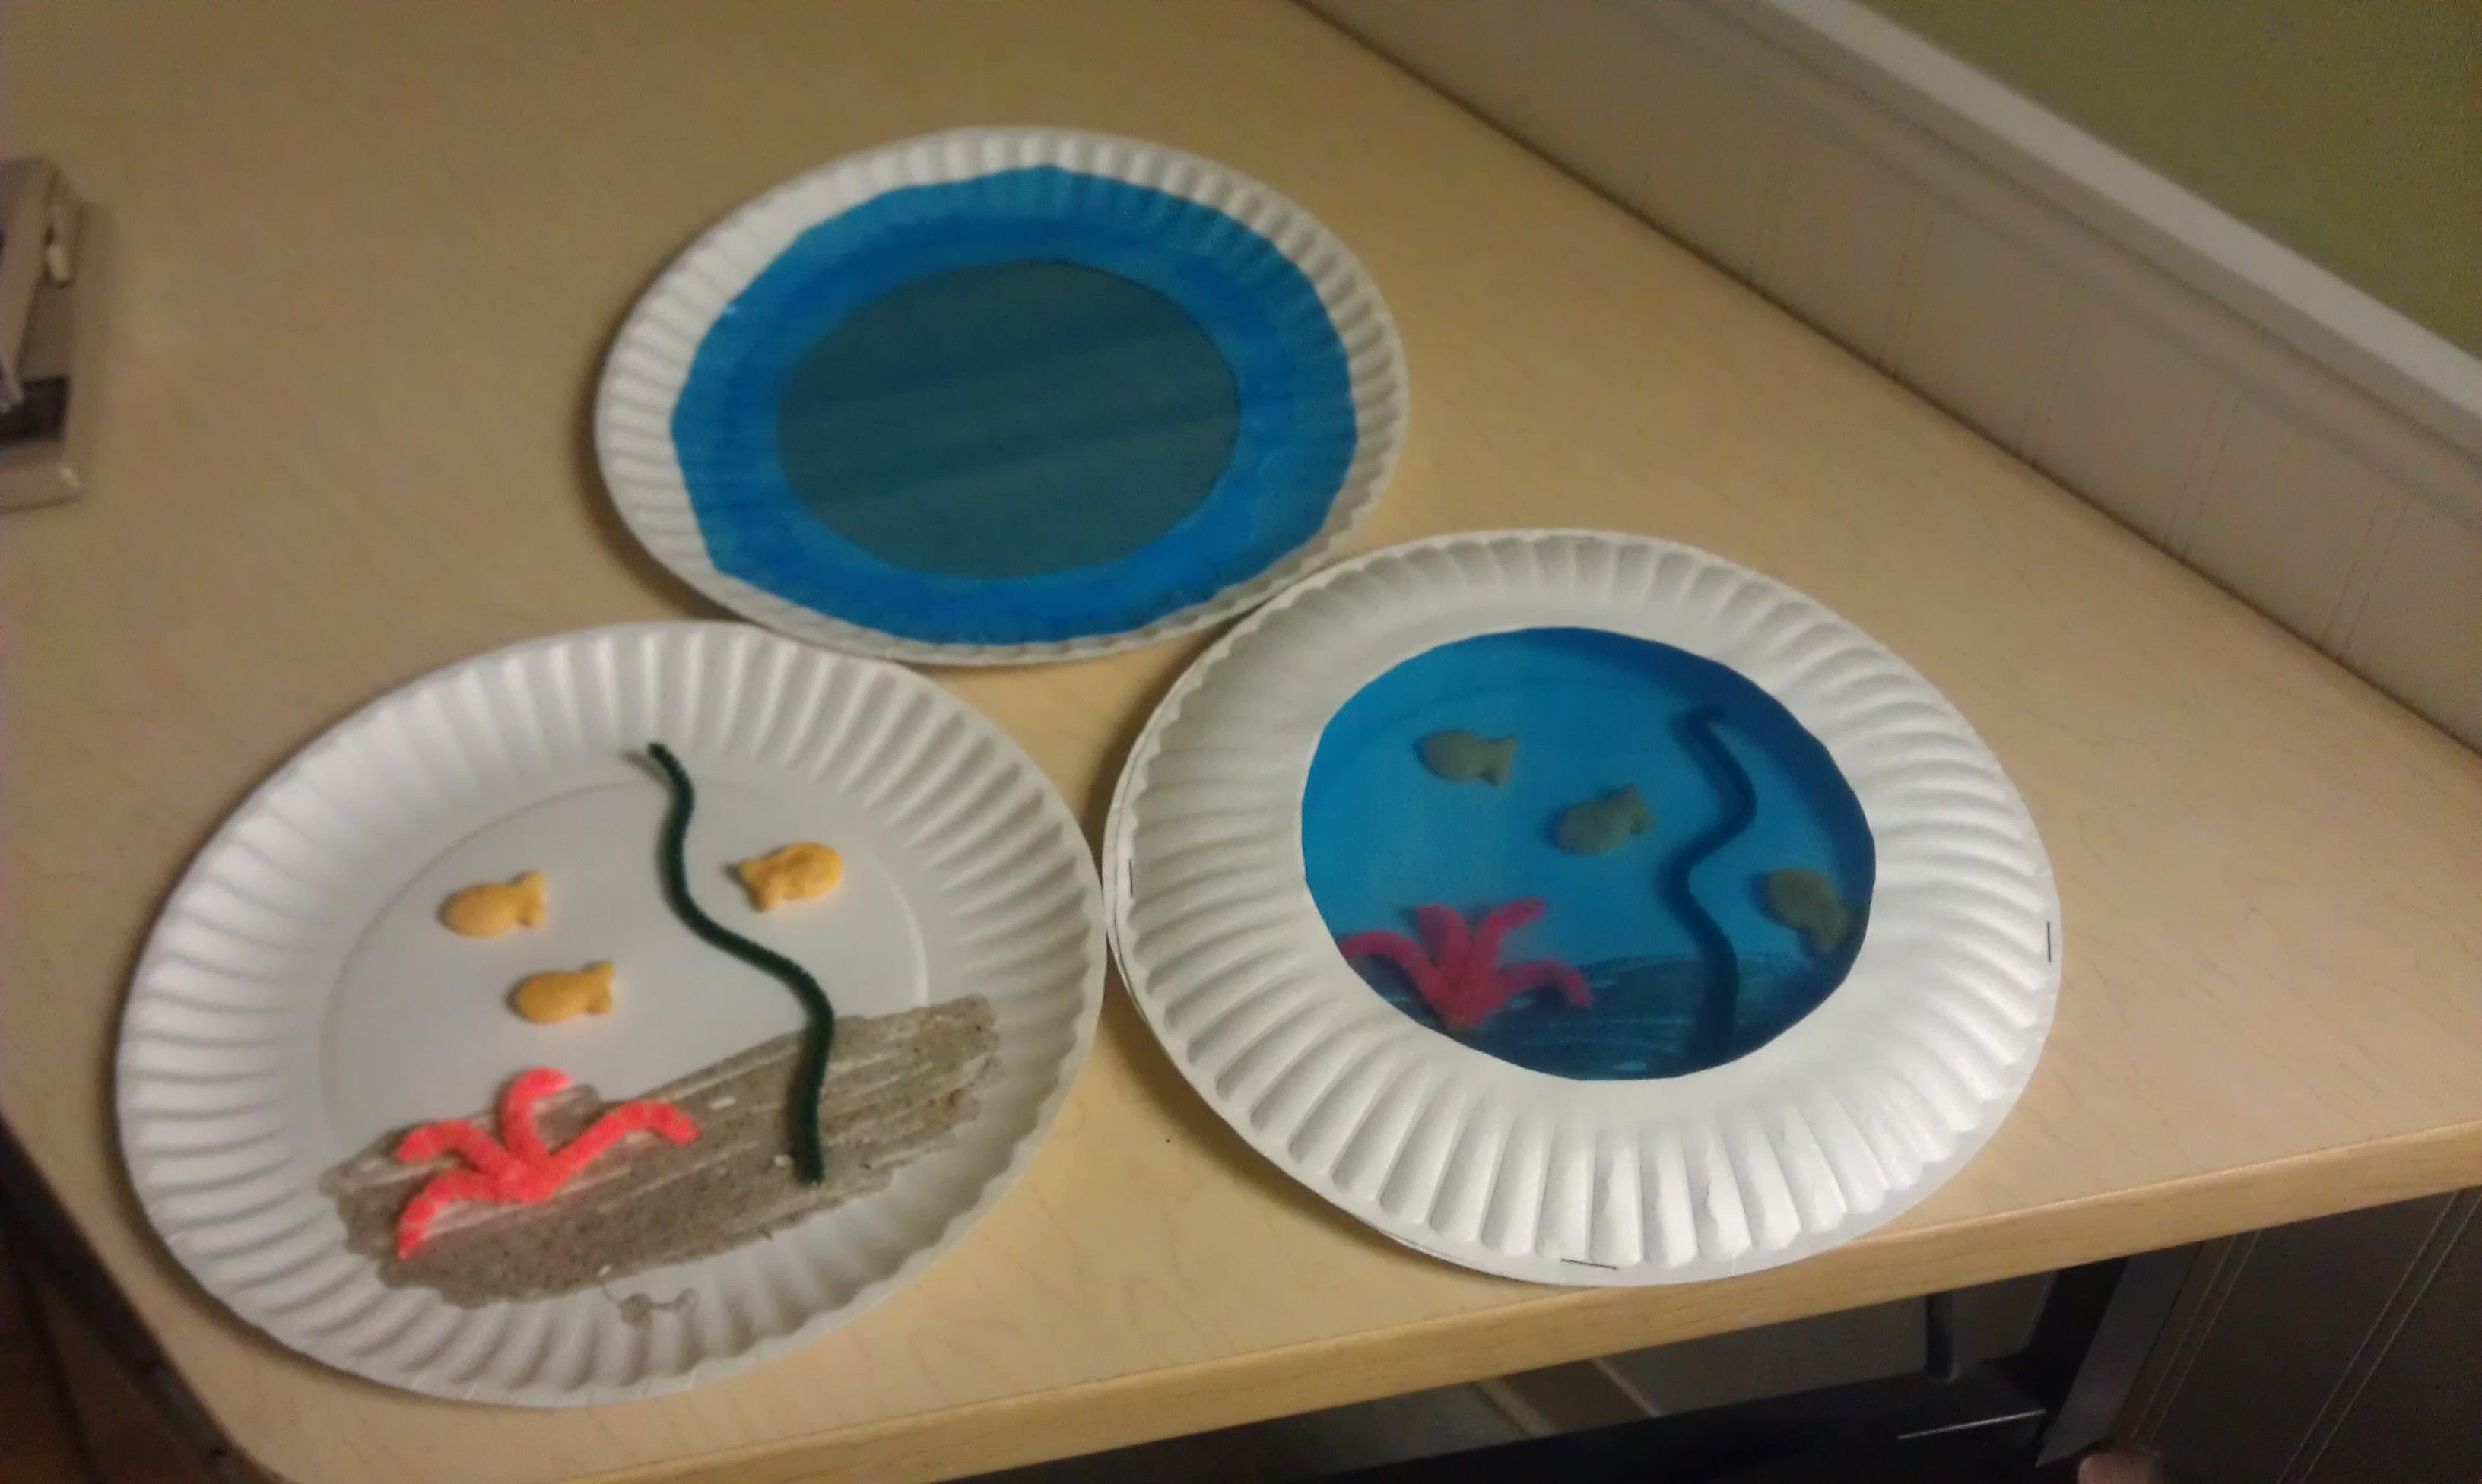 Paper Plate Aquarium Ybe One Pno Could Be Finding Nemo